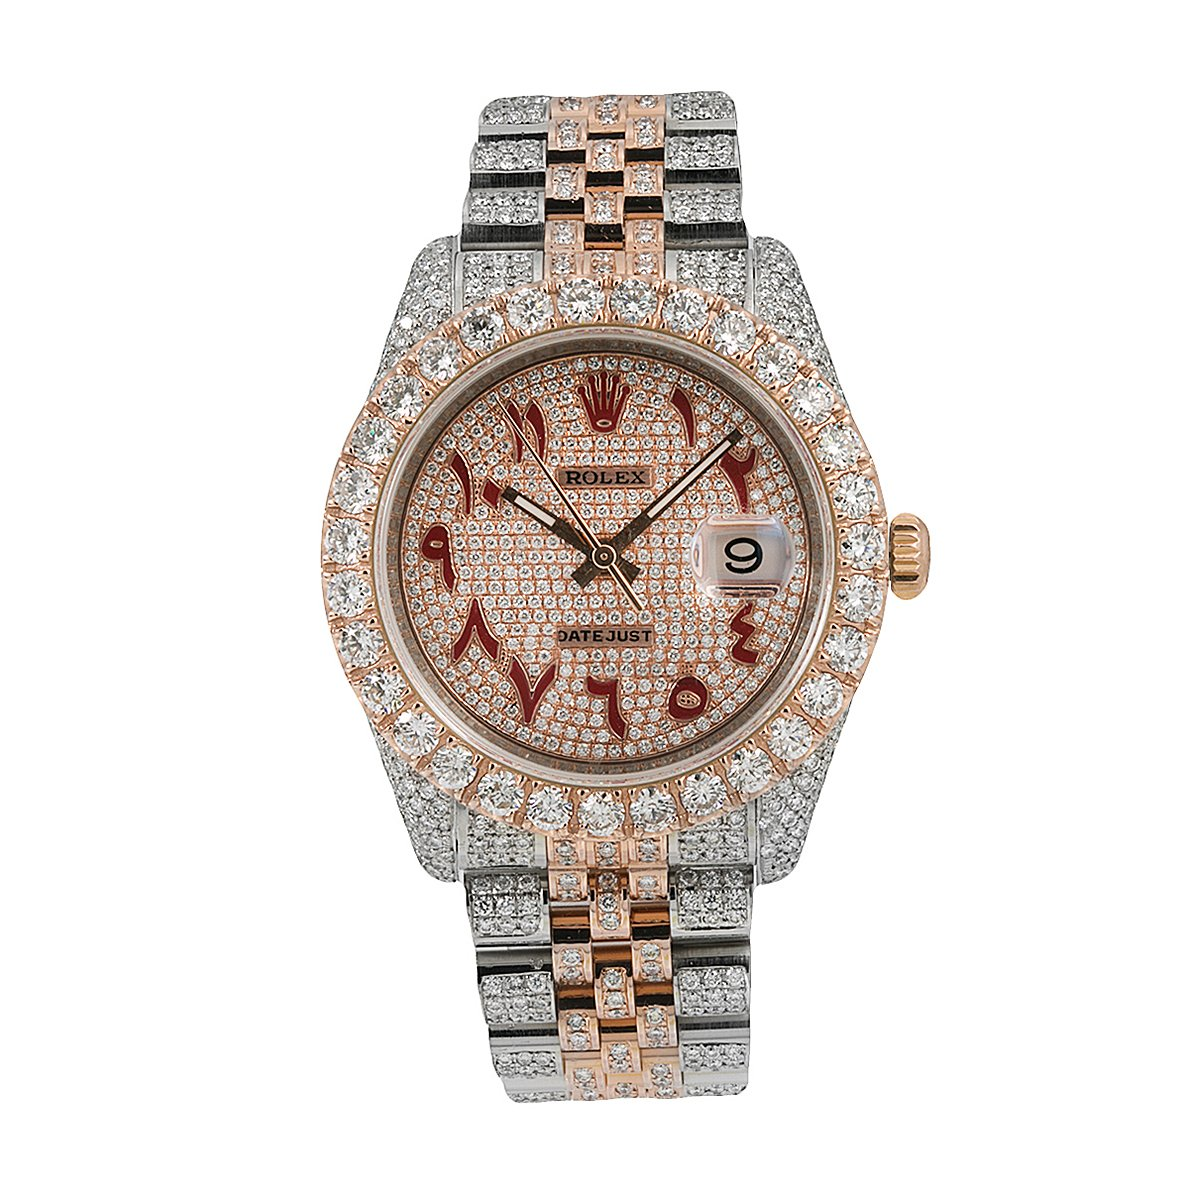 Rolex Datejust Diamond Watch, 116231 36mm, Champagne Diamond Dial With 17.25 CT Diamonds